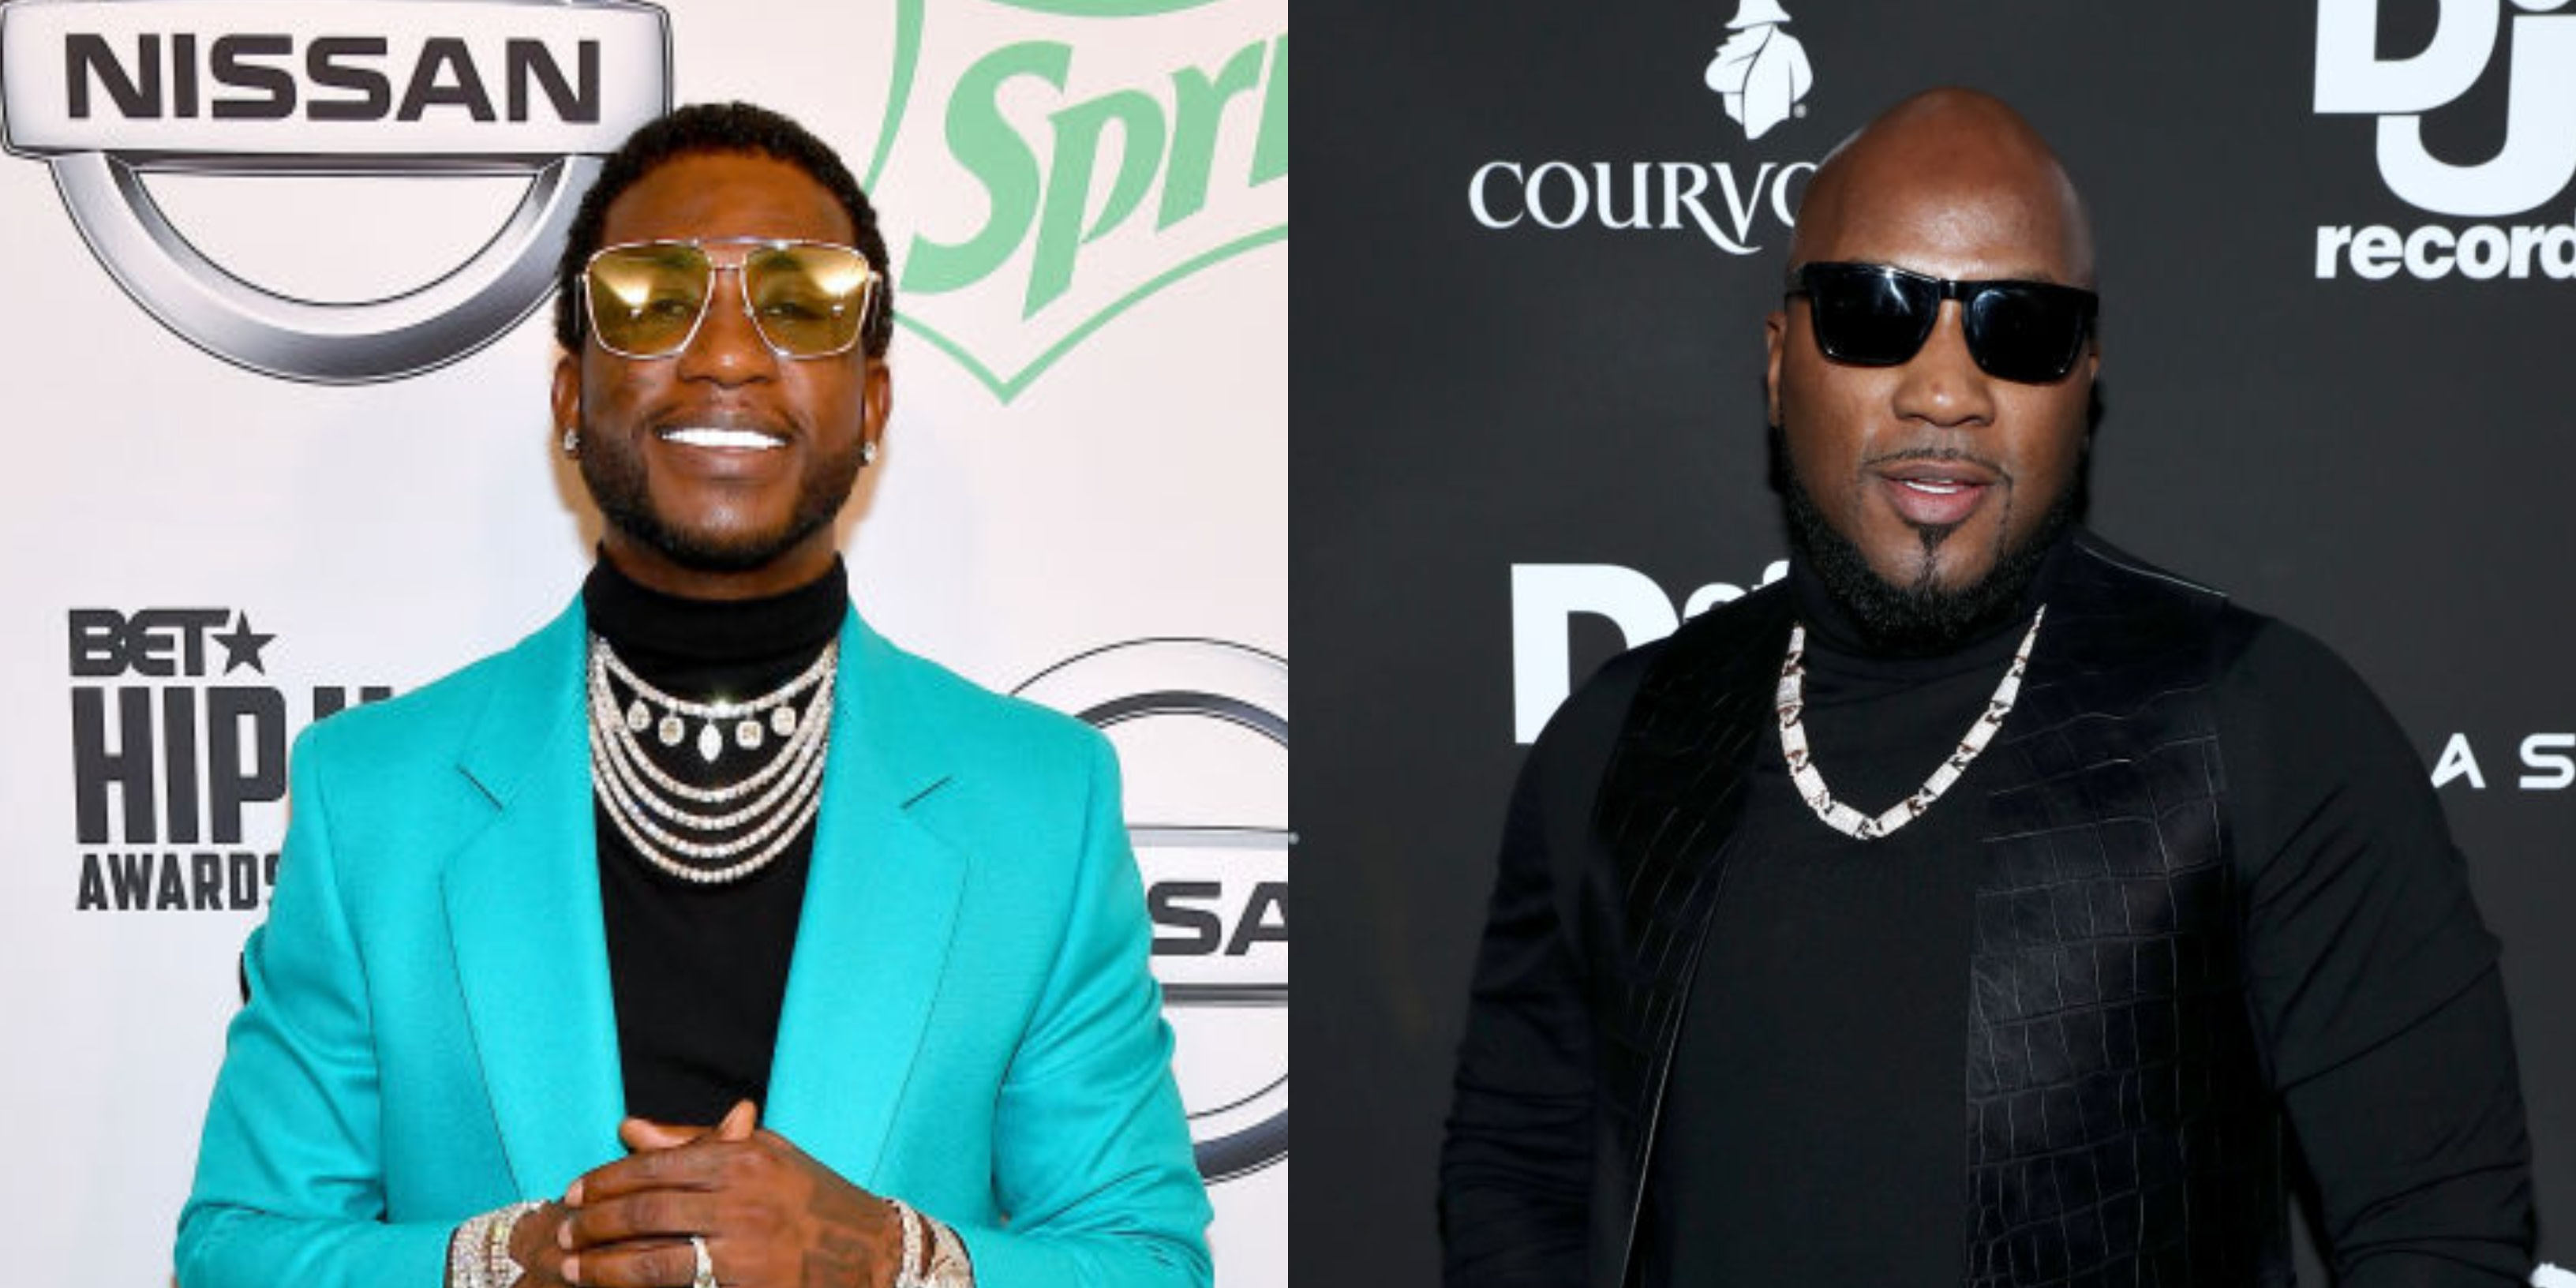 5 Moments From Gucci Mane And Jeezy 'Verzuz' Battle That The Culture Won't Ever Forget